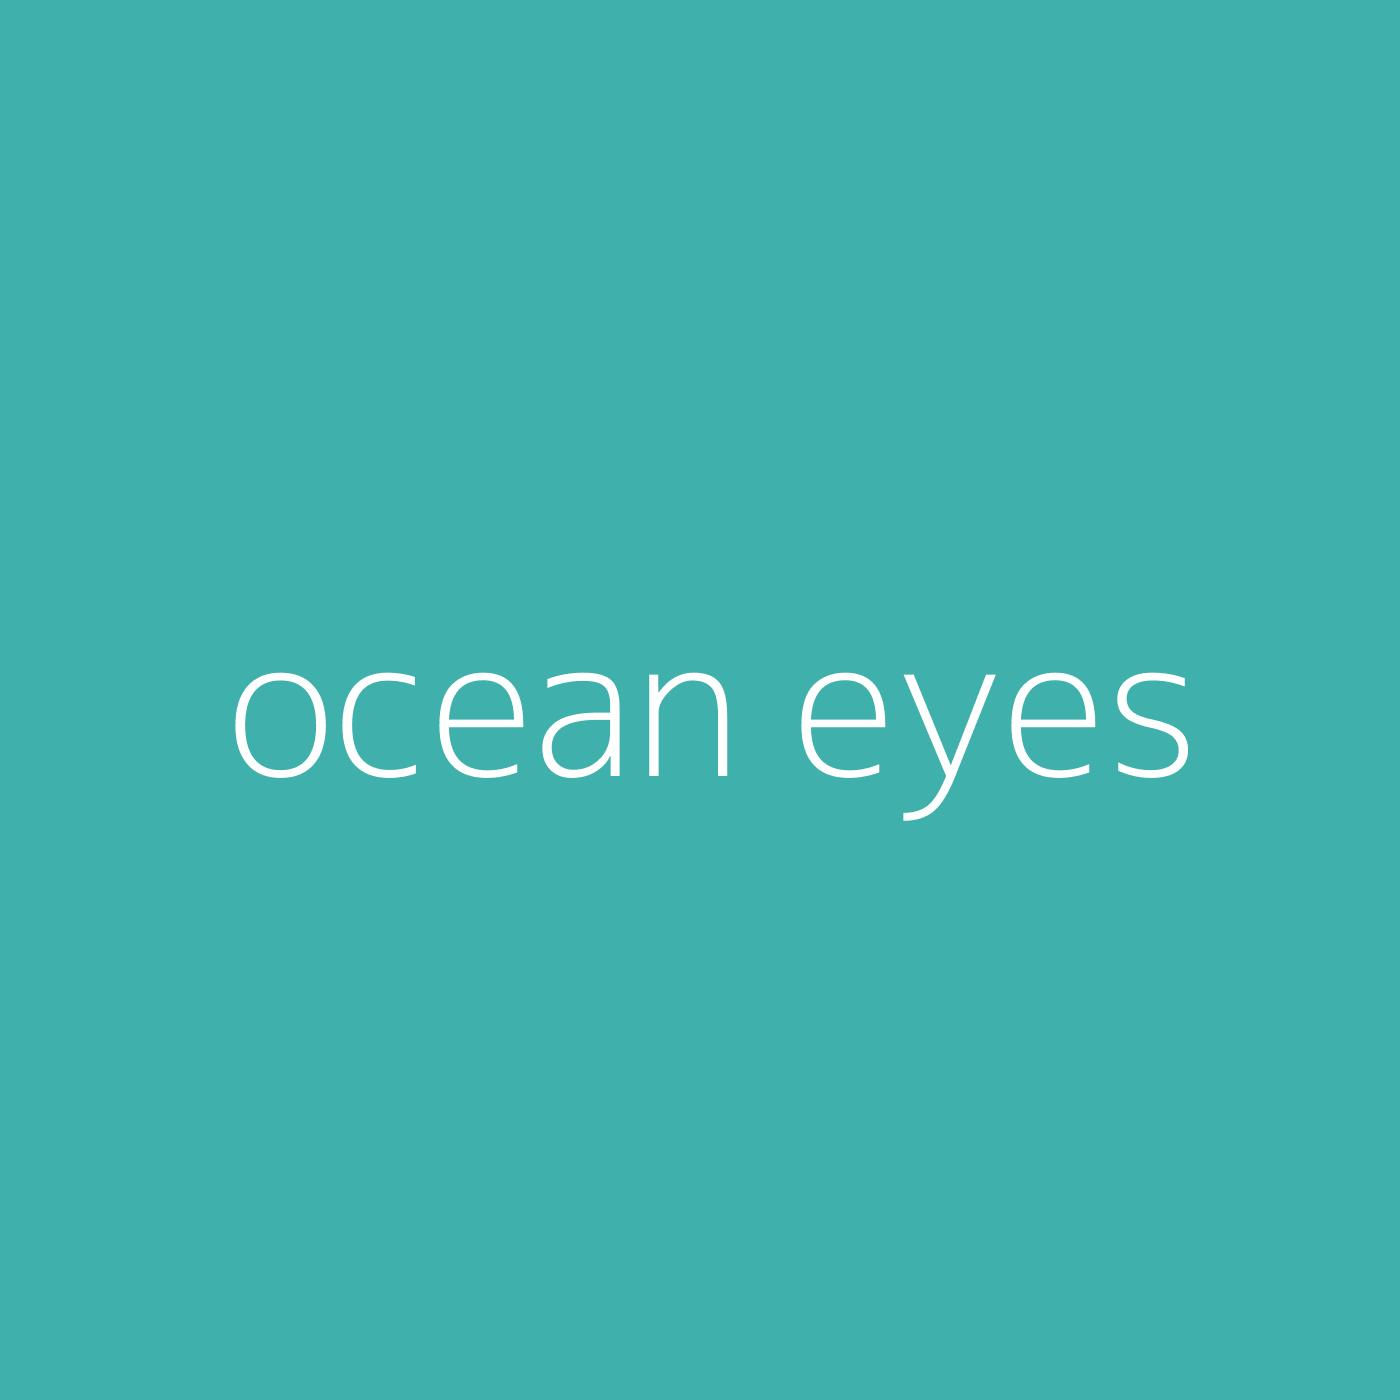 ocean eyes – Billie Eilish